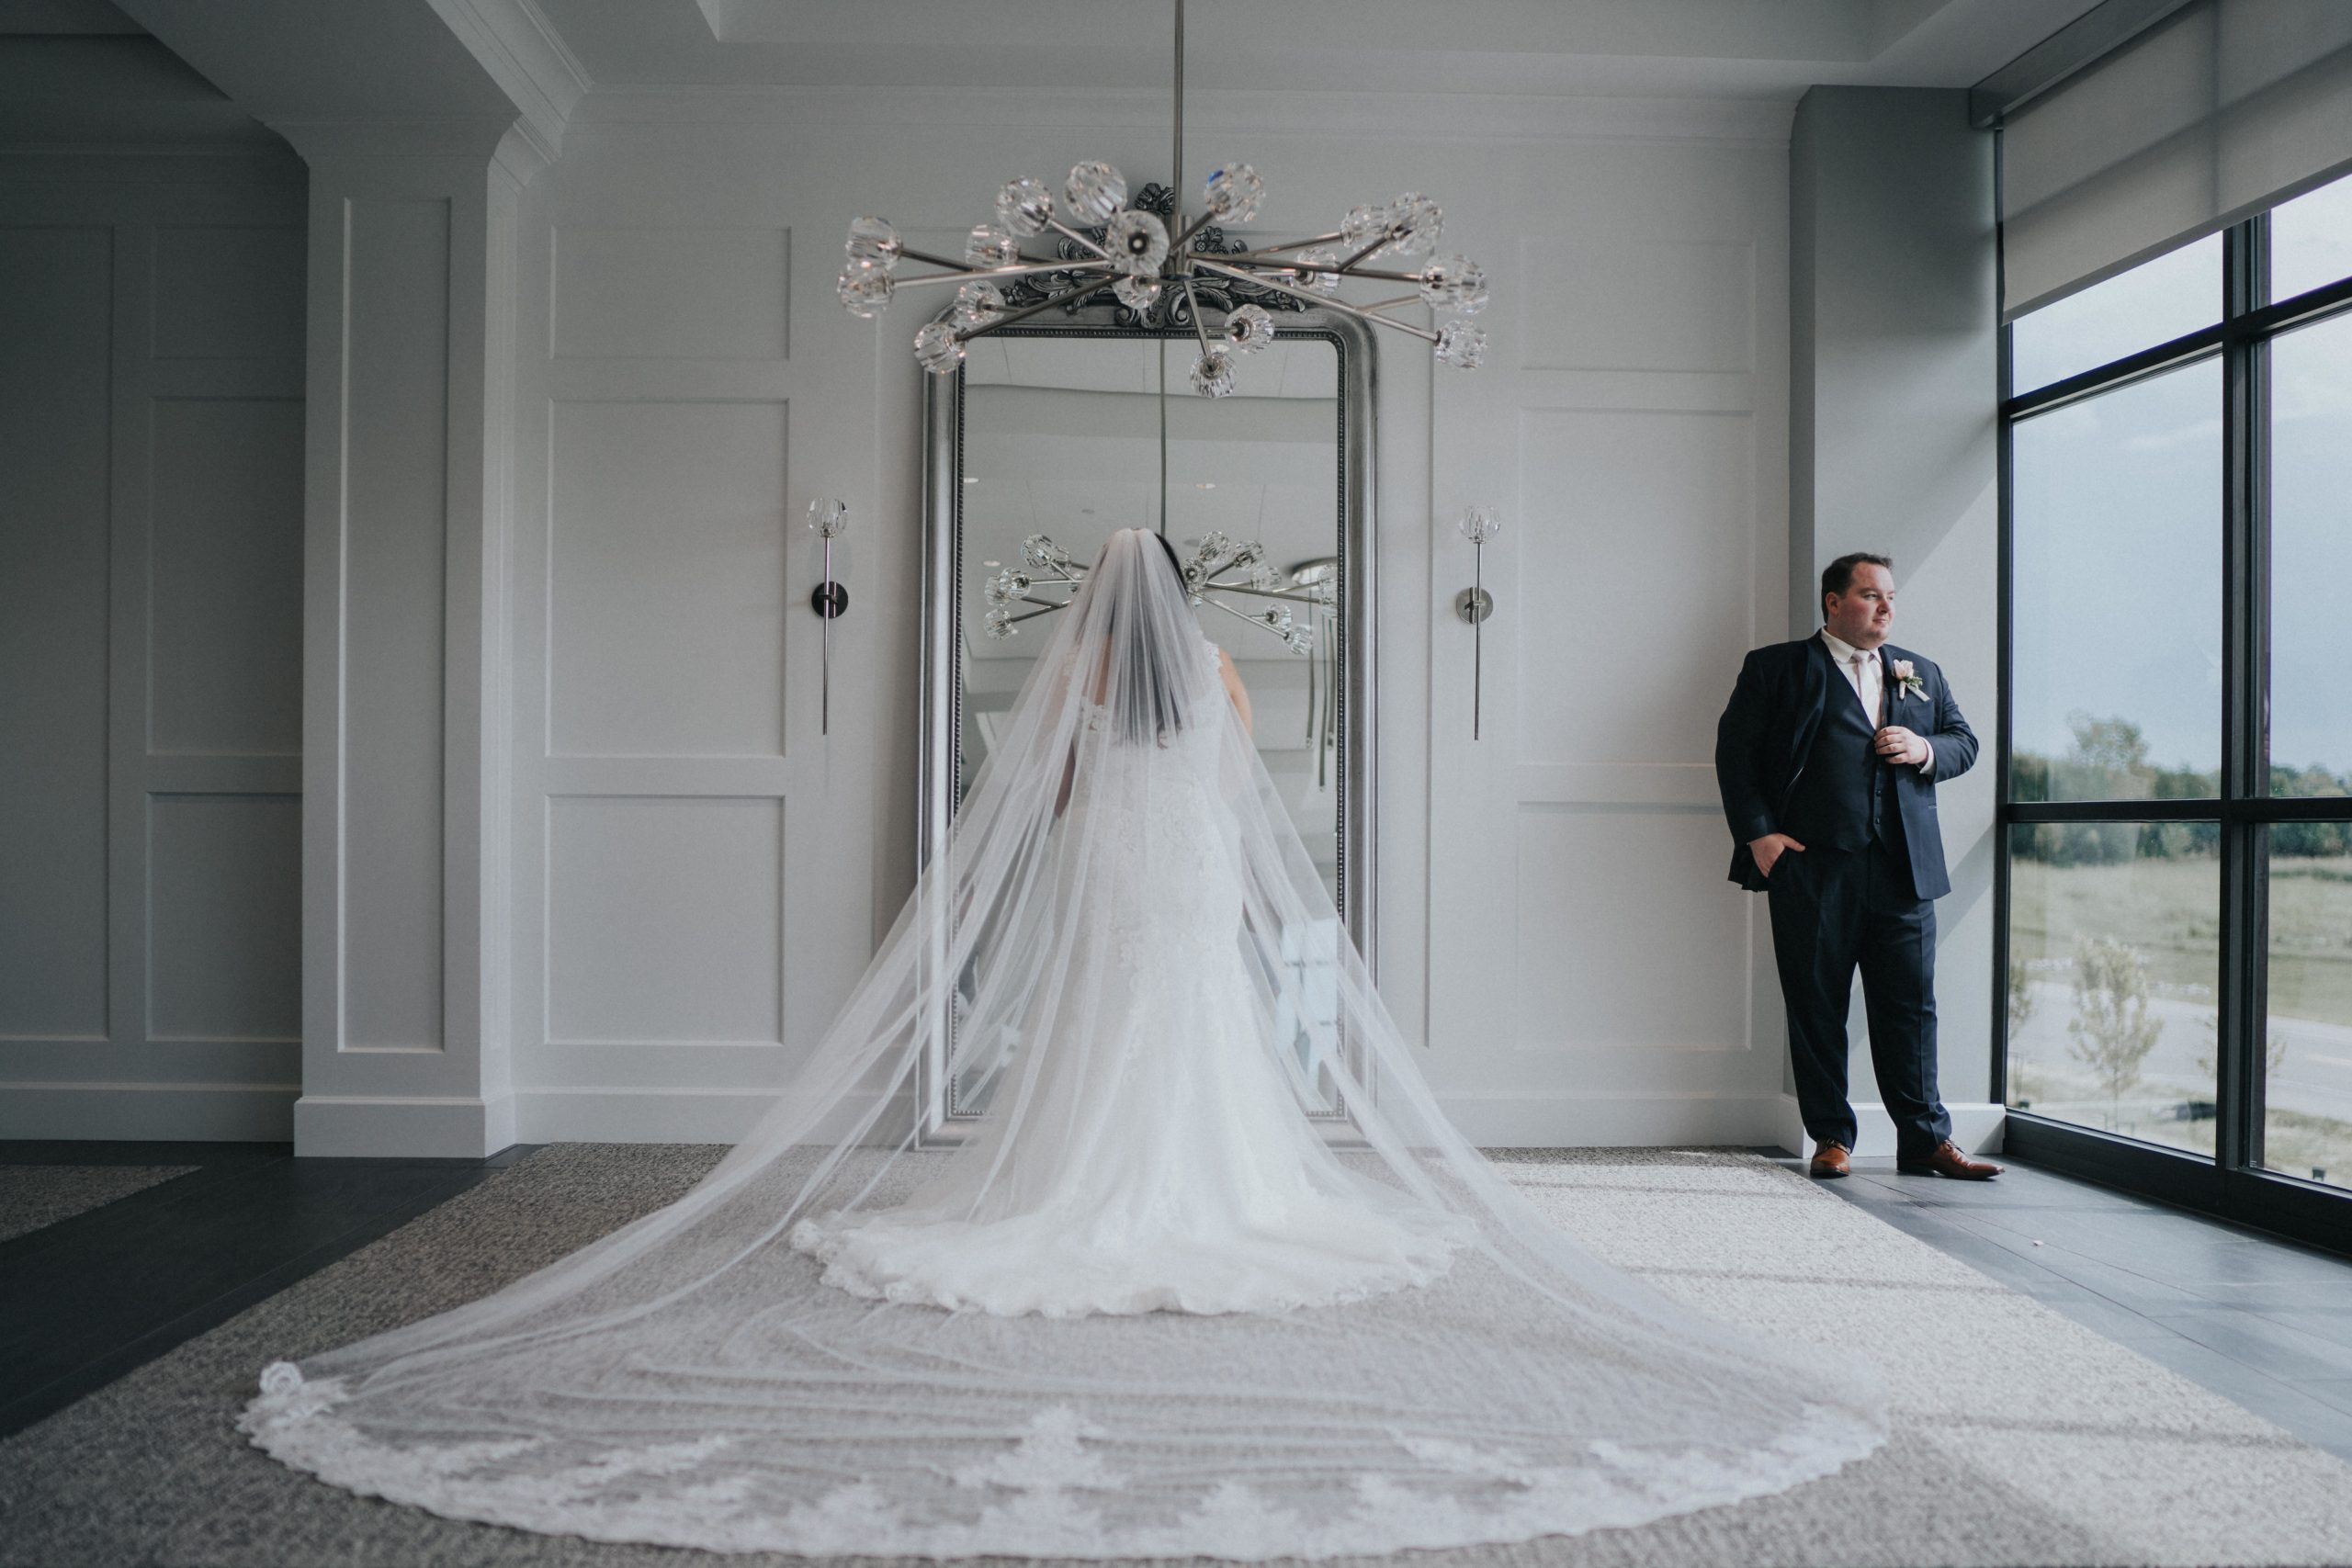 Bride faces the mirror with her dress on